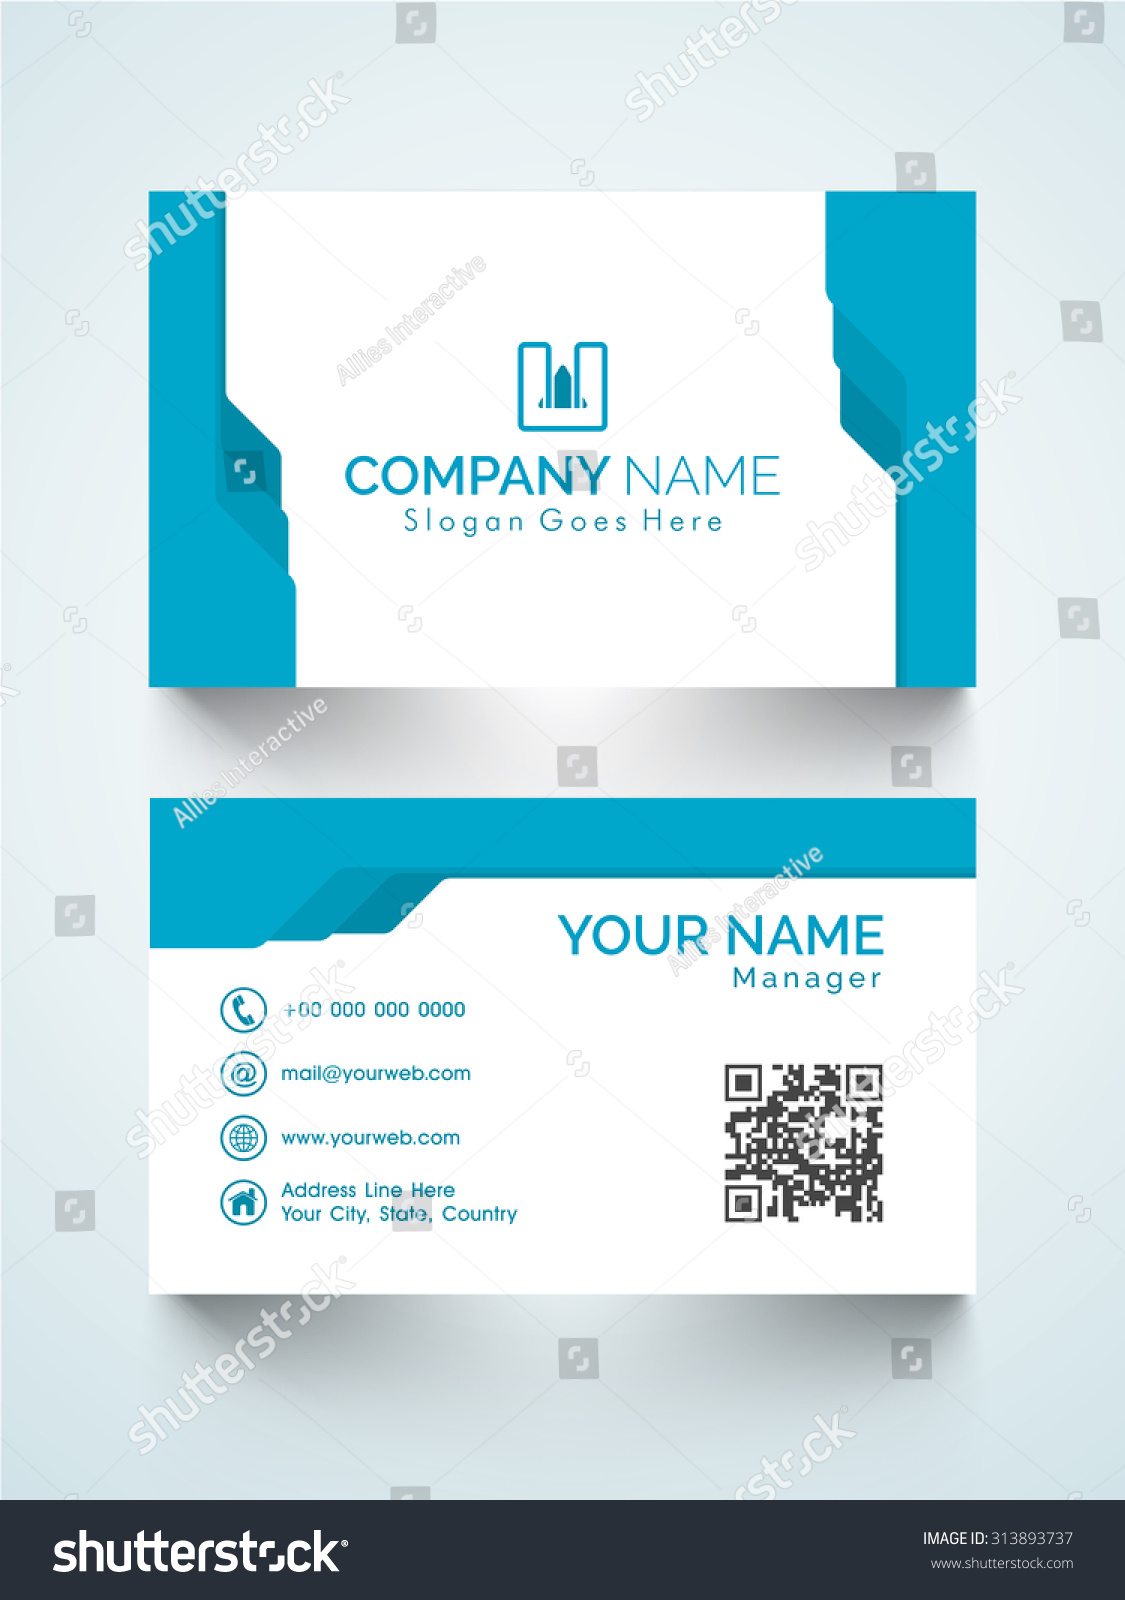 Creative horizontal business card visiting card stock vector 2018 creative horizontal business card or visiting card design for your company colourmoves